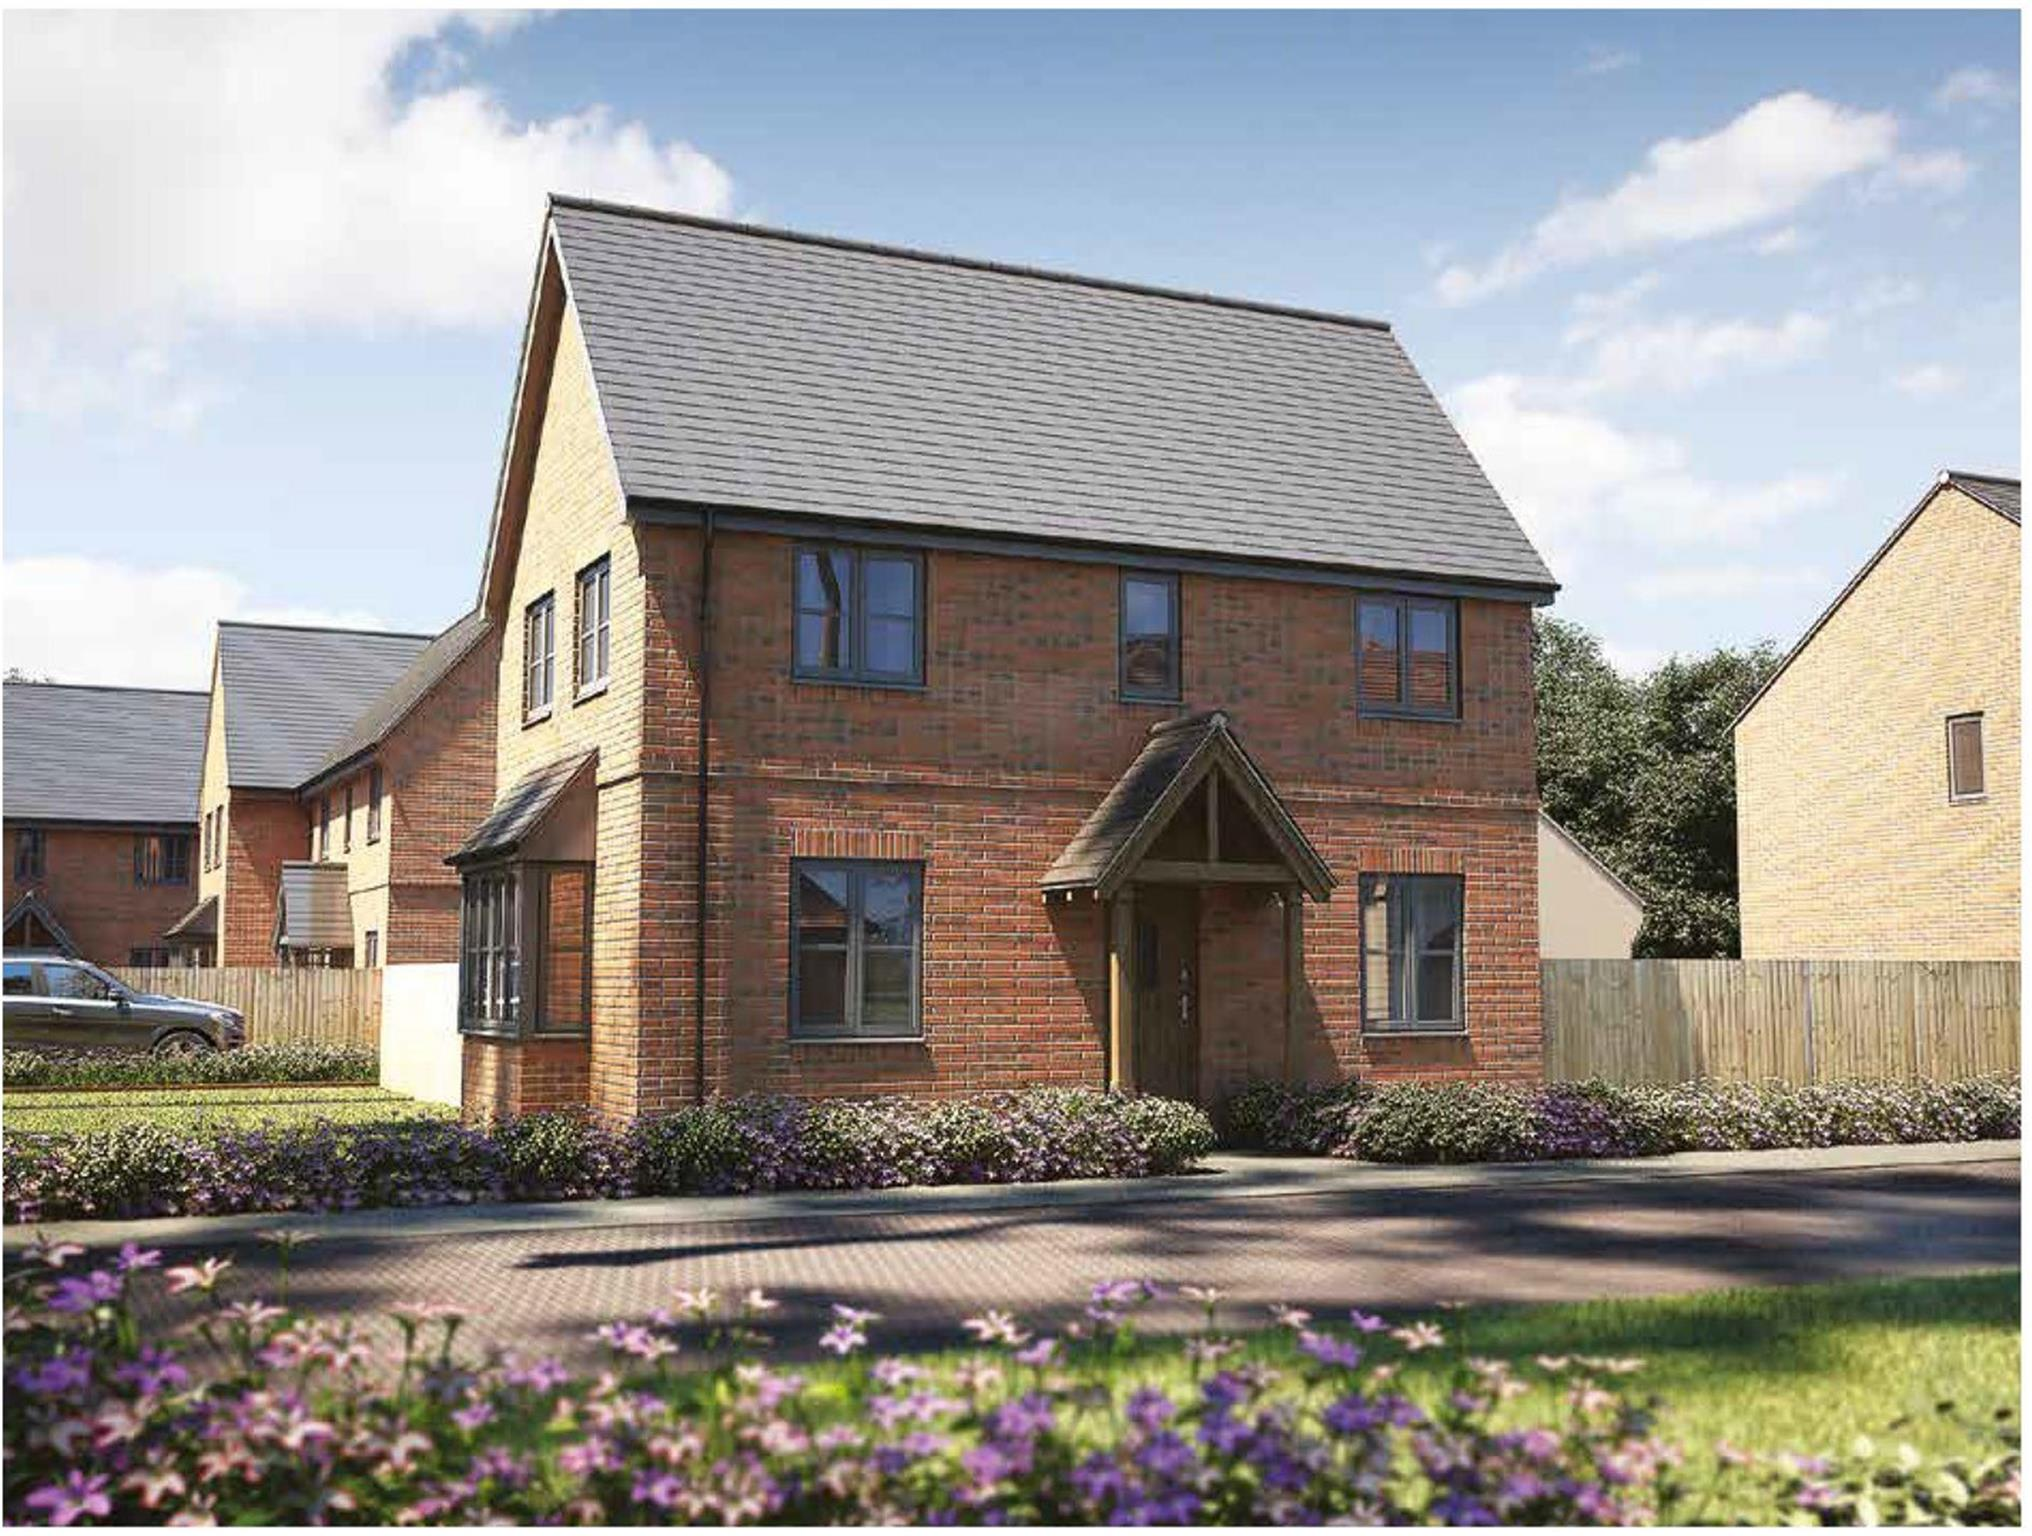 Plot 14, Ash House, Chartist Edge, Staunton, Glos GL19